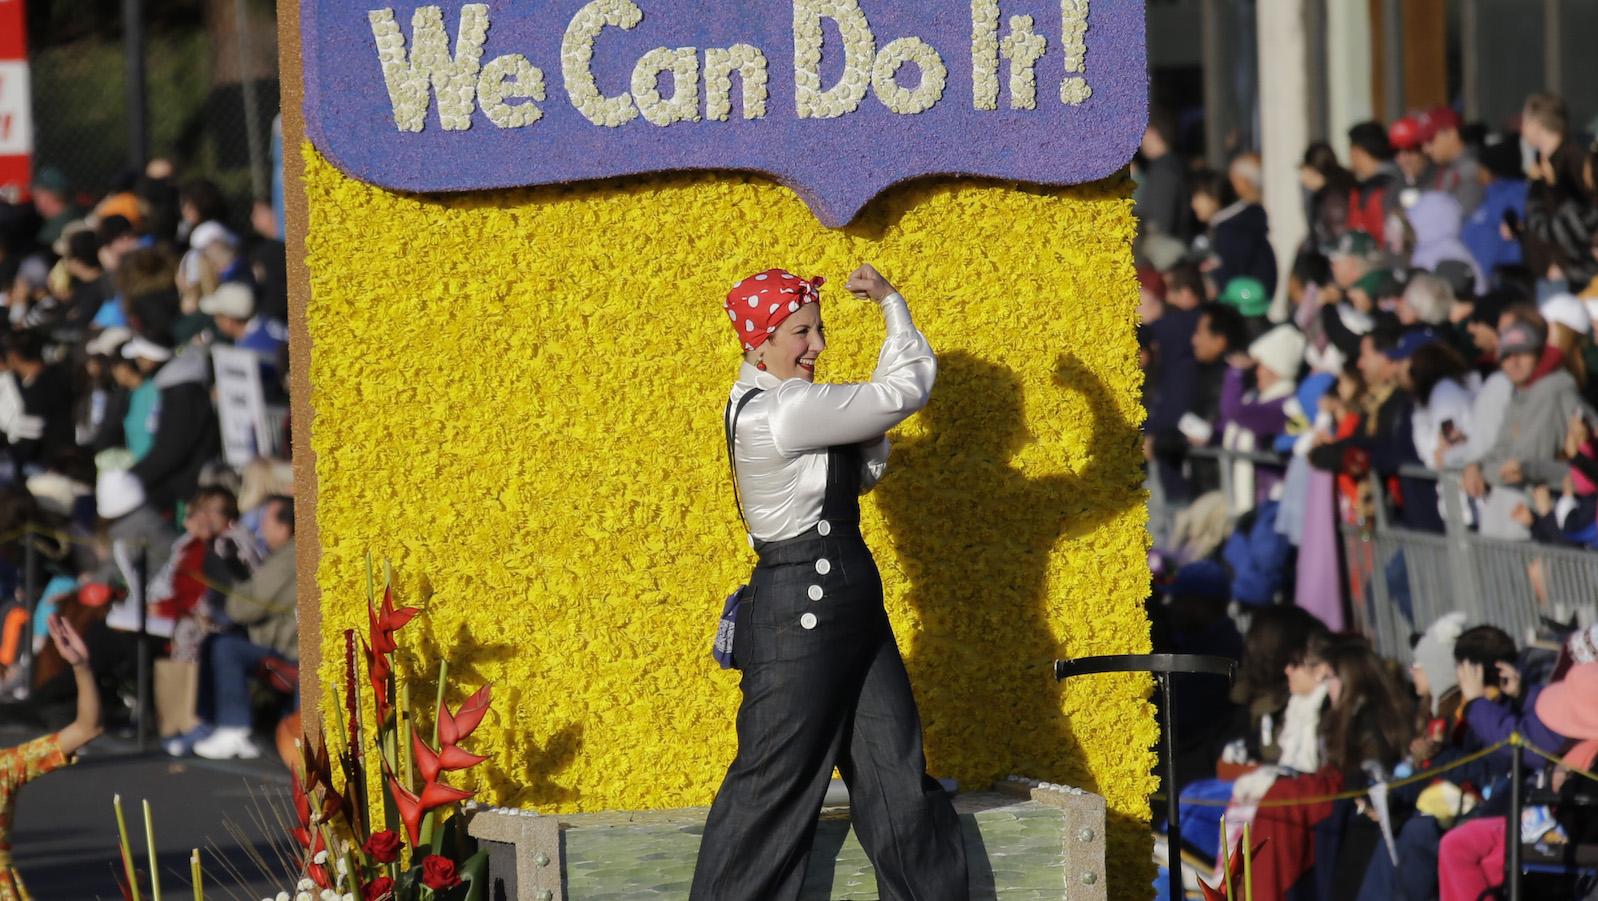 A Rosie The Riveter figure is seen aboard the Wells Fargo float in the 125th Rose Parade in Pasadena, Calif., Wednesday, Jan. 1, 2014. (AP Photo/Reed Saxon)